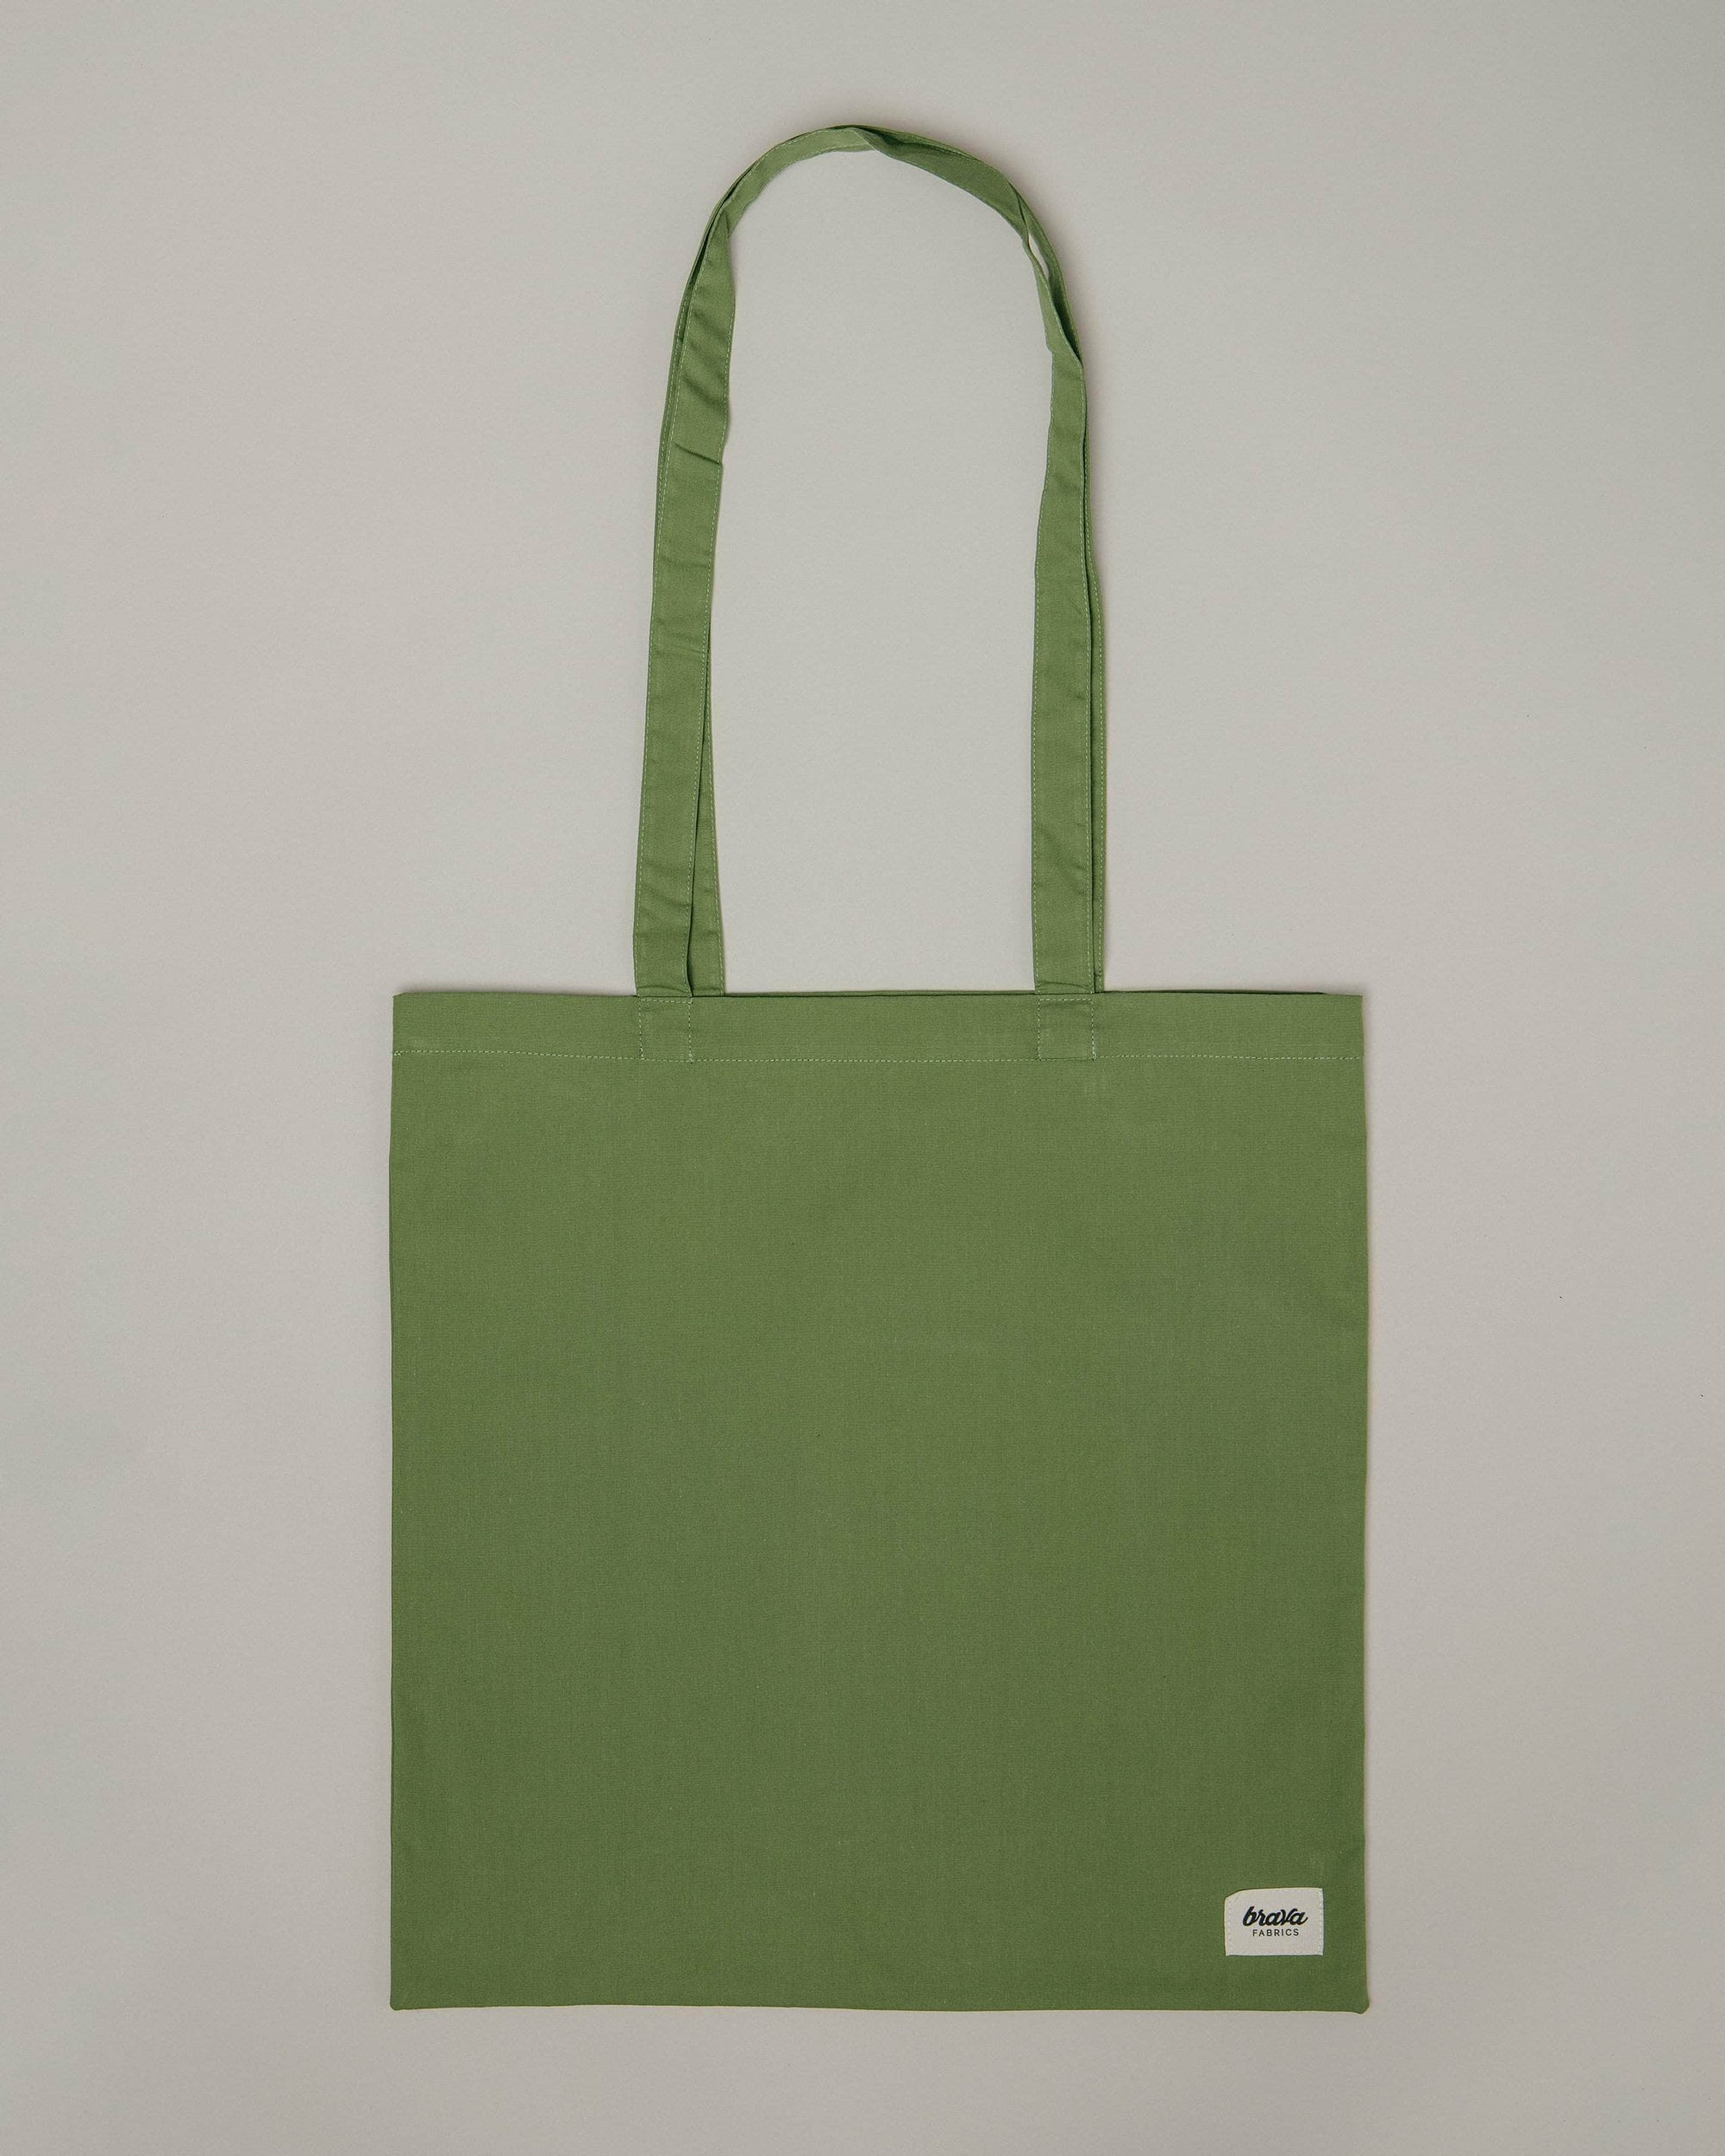 Upcycled Totebag Adventure Essential